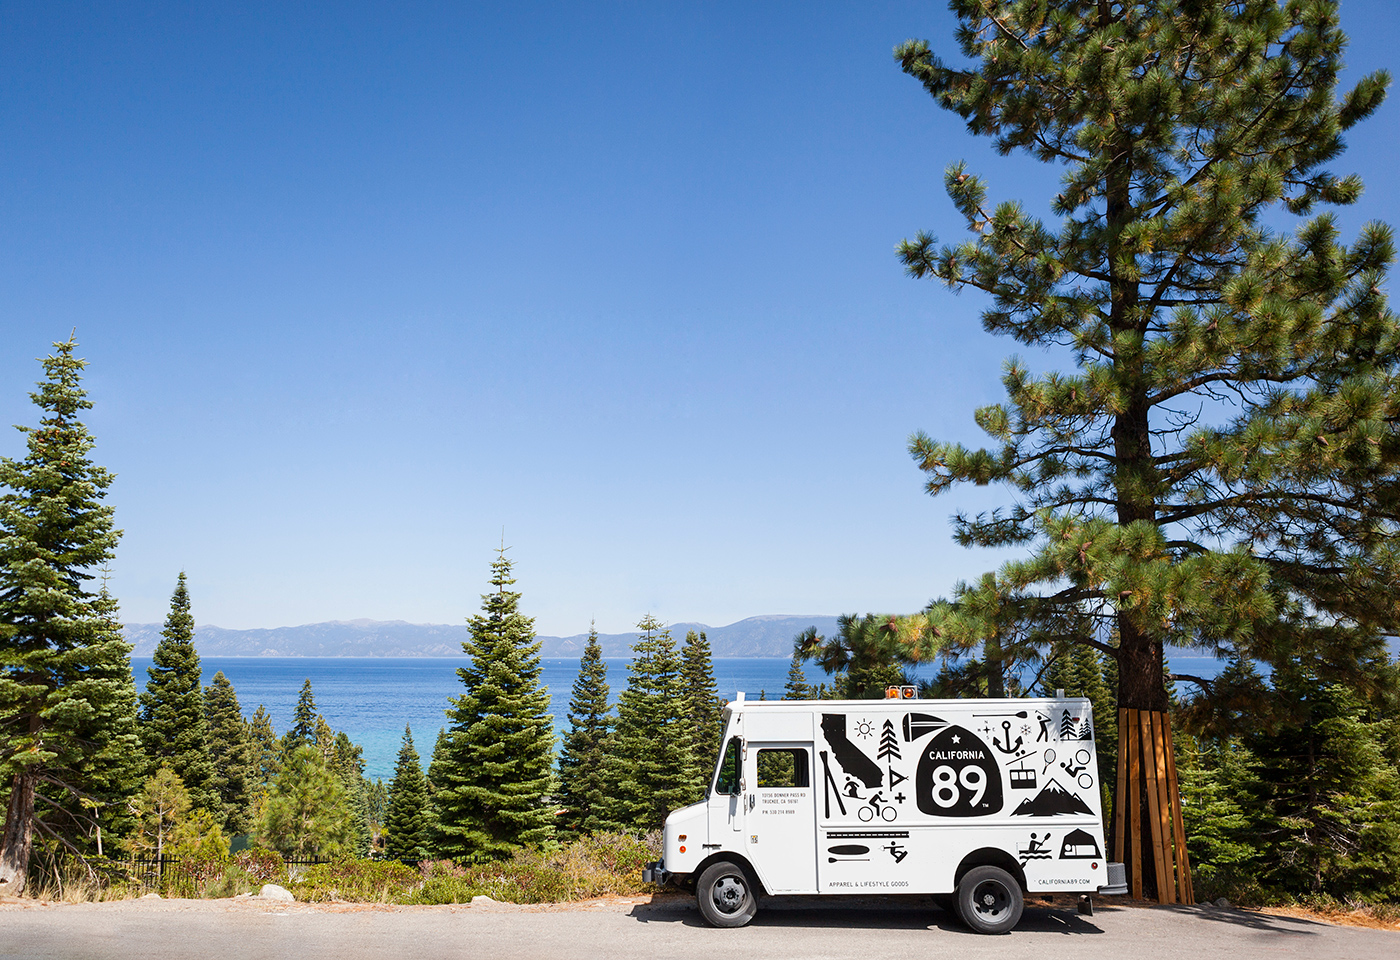 California 89 Truck on Scenic Overlook